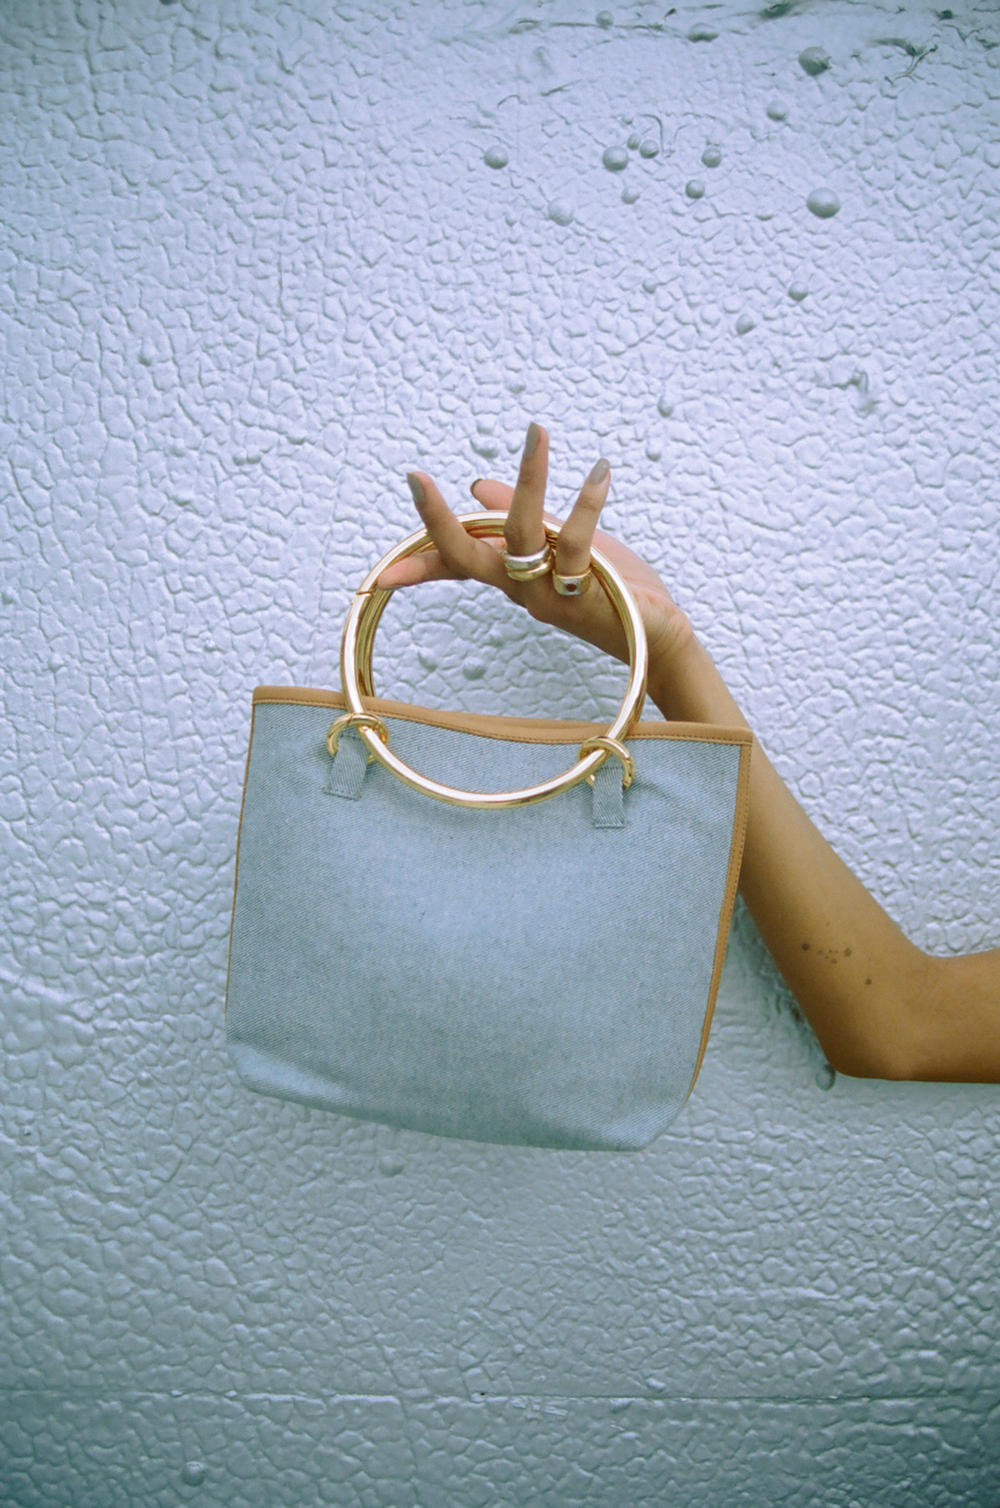 Janis Studios Ethical Denim Bag Collection Upcycled Interchangeable Handles DIY Mixing Matching